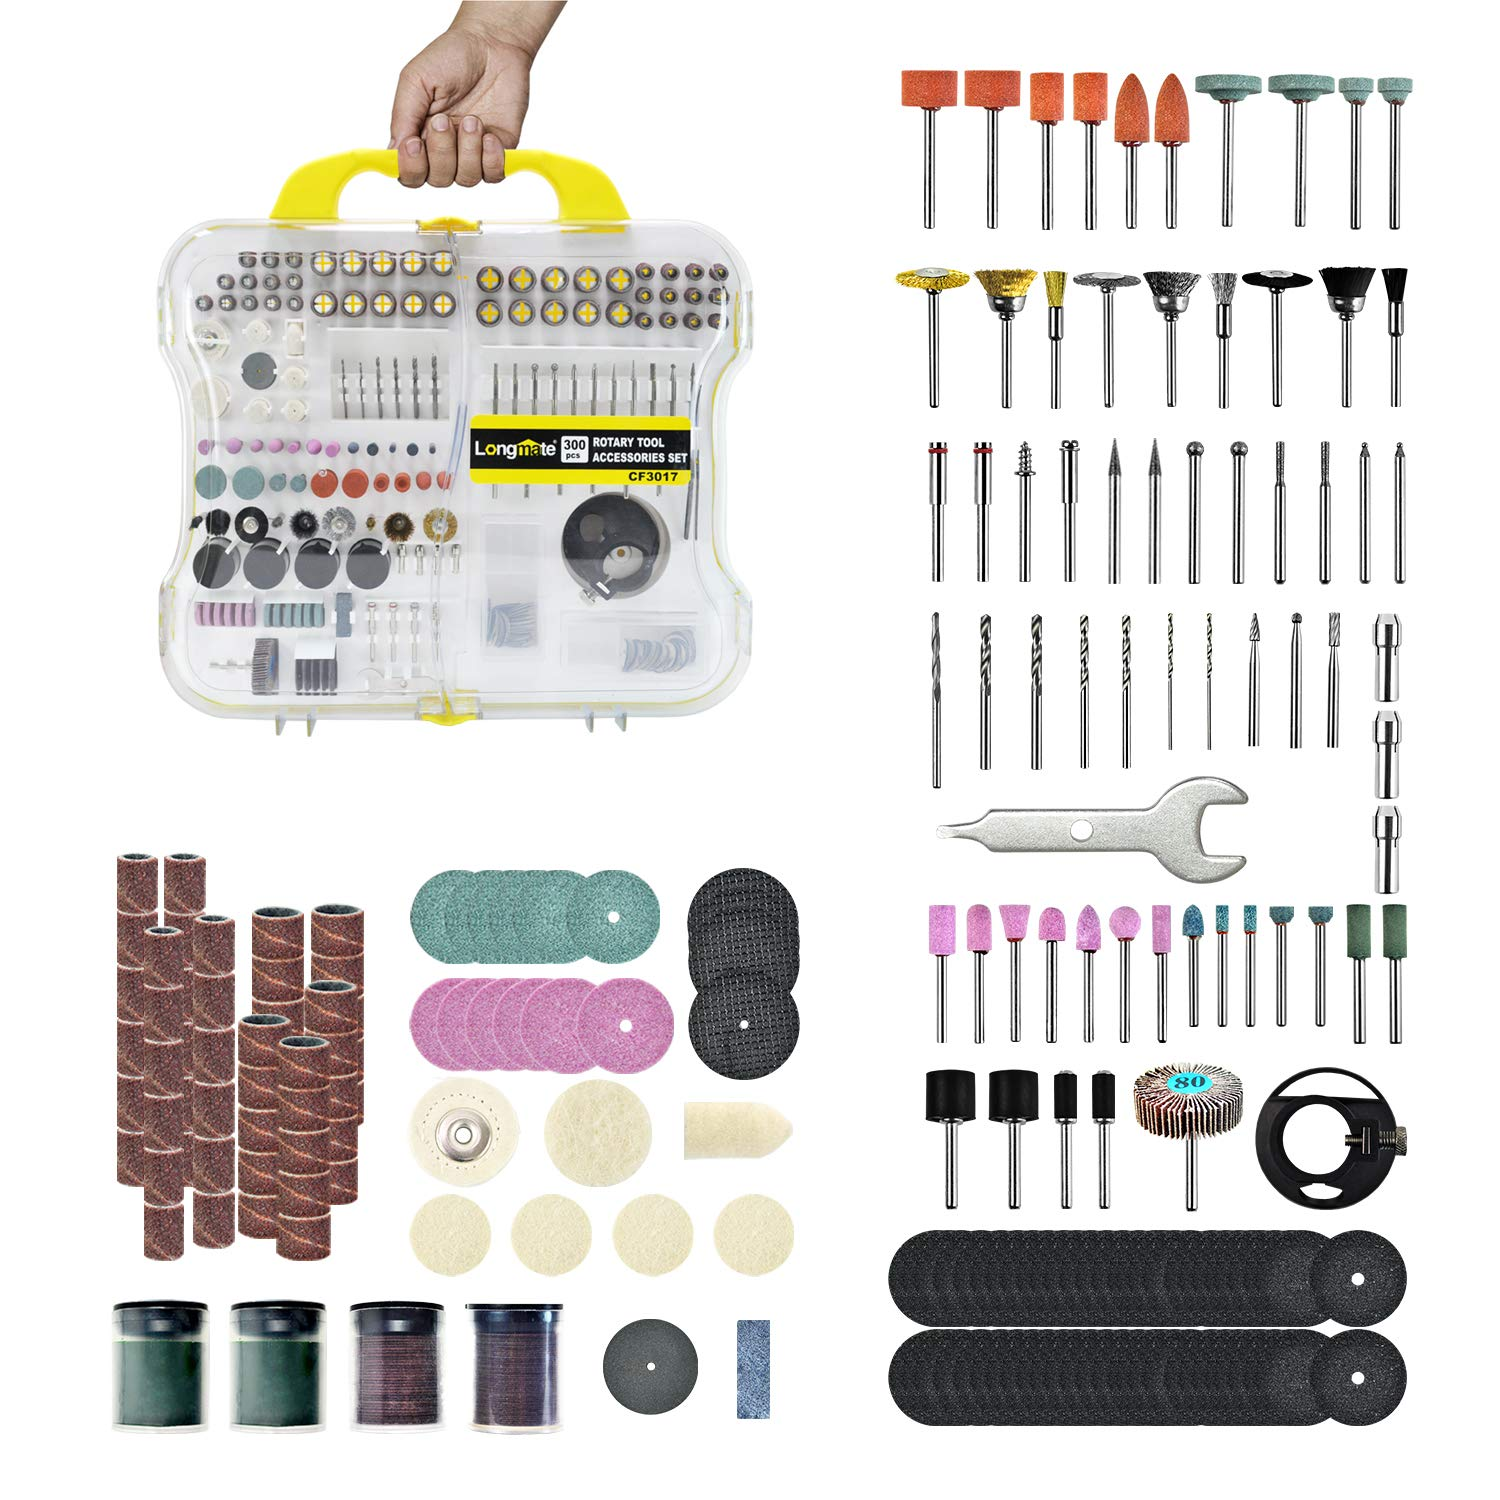 Longmate 300 PCS Rotary Tool Accessories Kit Universal Fitment for Easy Cutting, Carving, Grinding, Sanding and Polishing